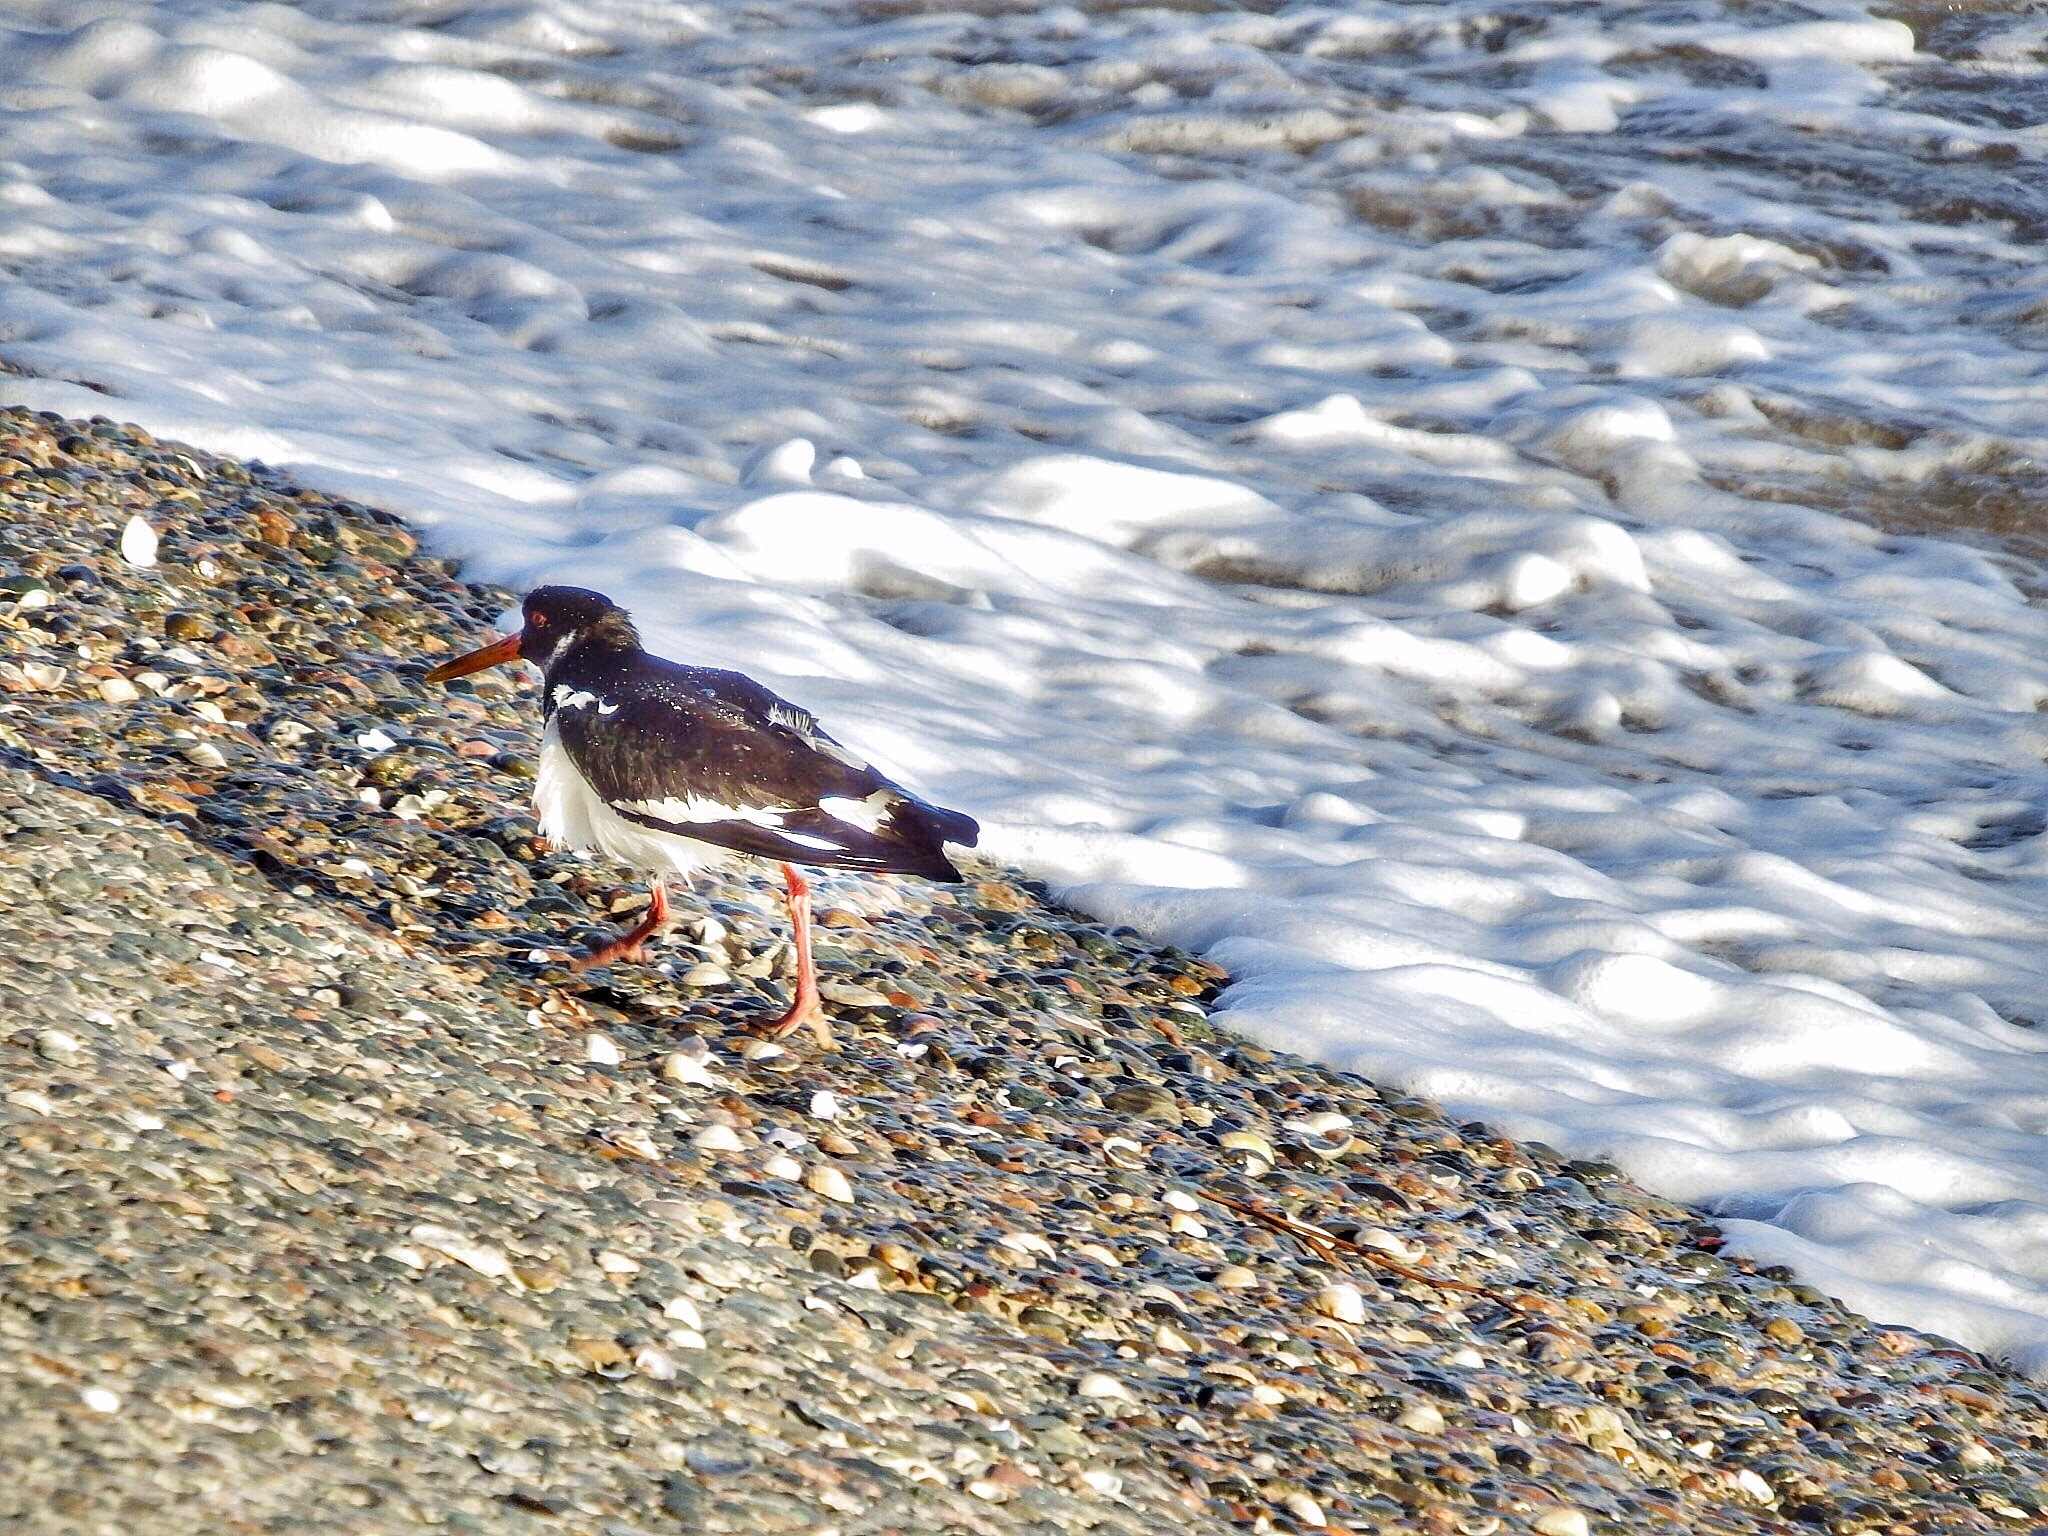 Bad feather day for this Oystercatcher...080601 by Michael jjg